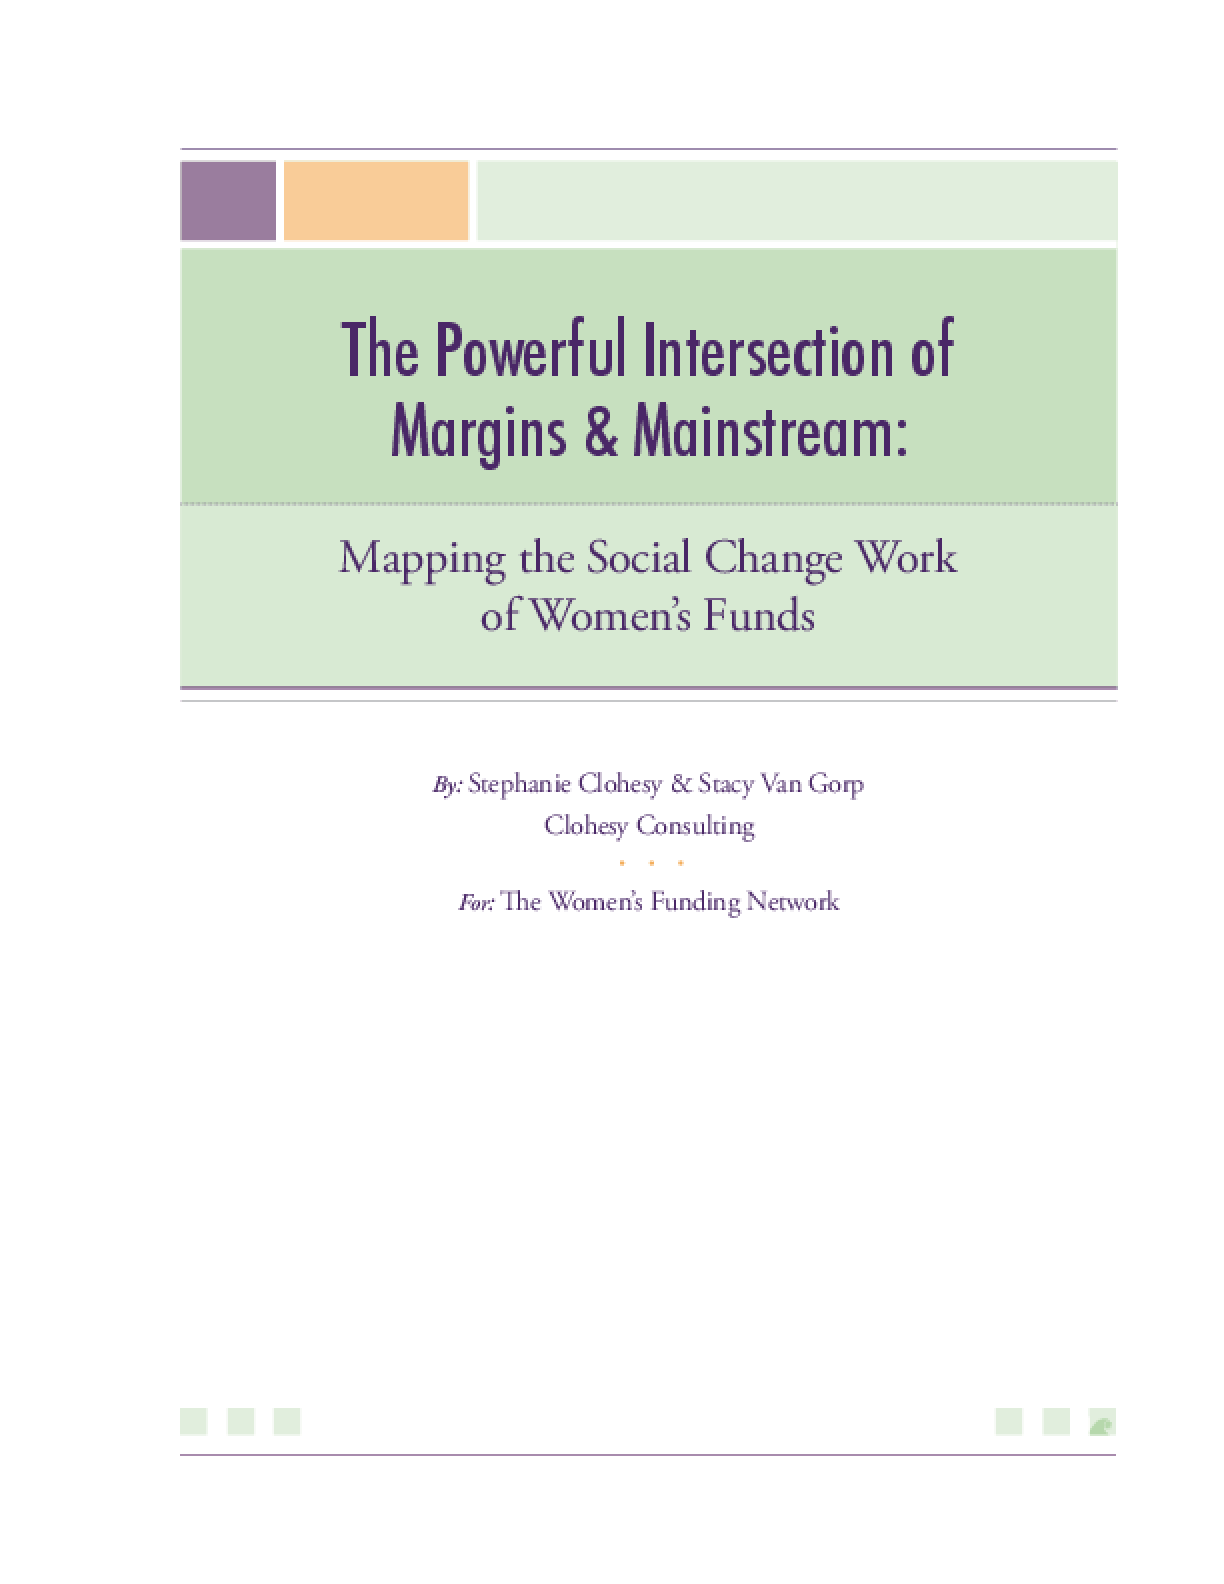 The Powerful Intersection of Margins and Mainstream: Mapping the Social Change Work of Women's Funds